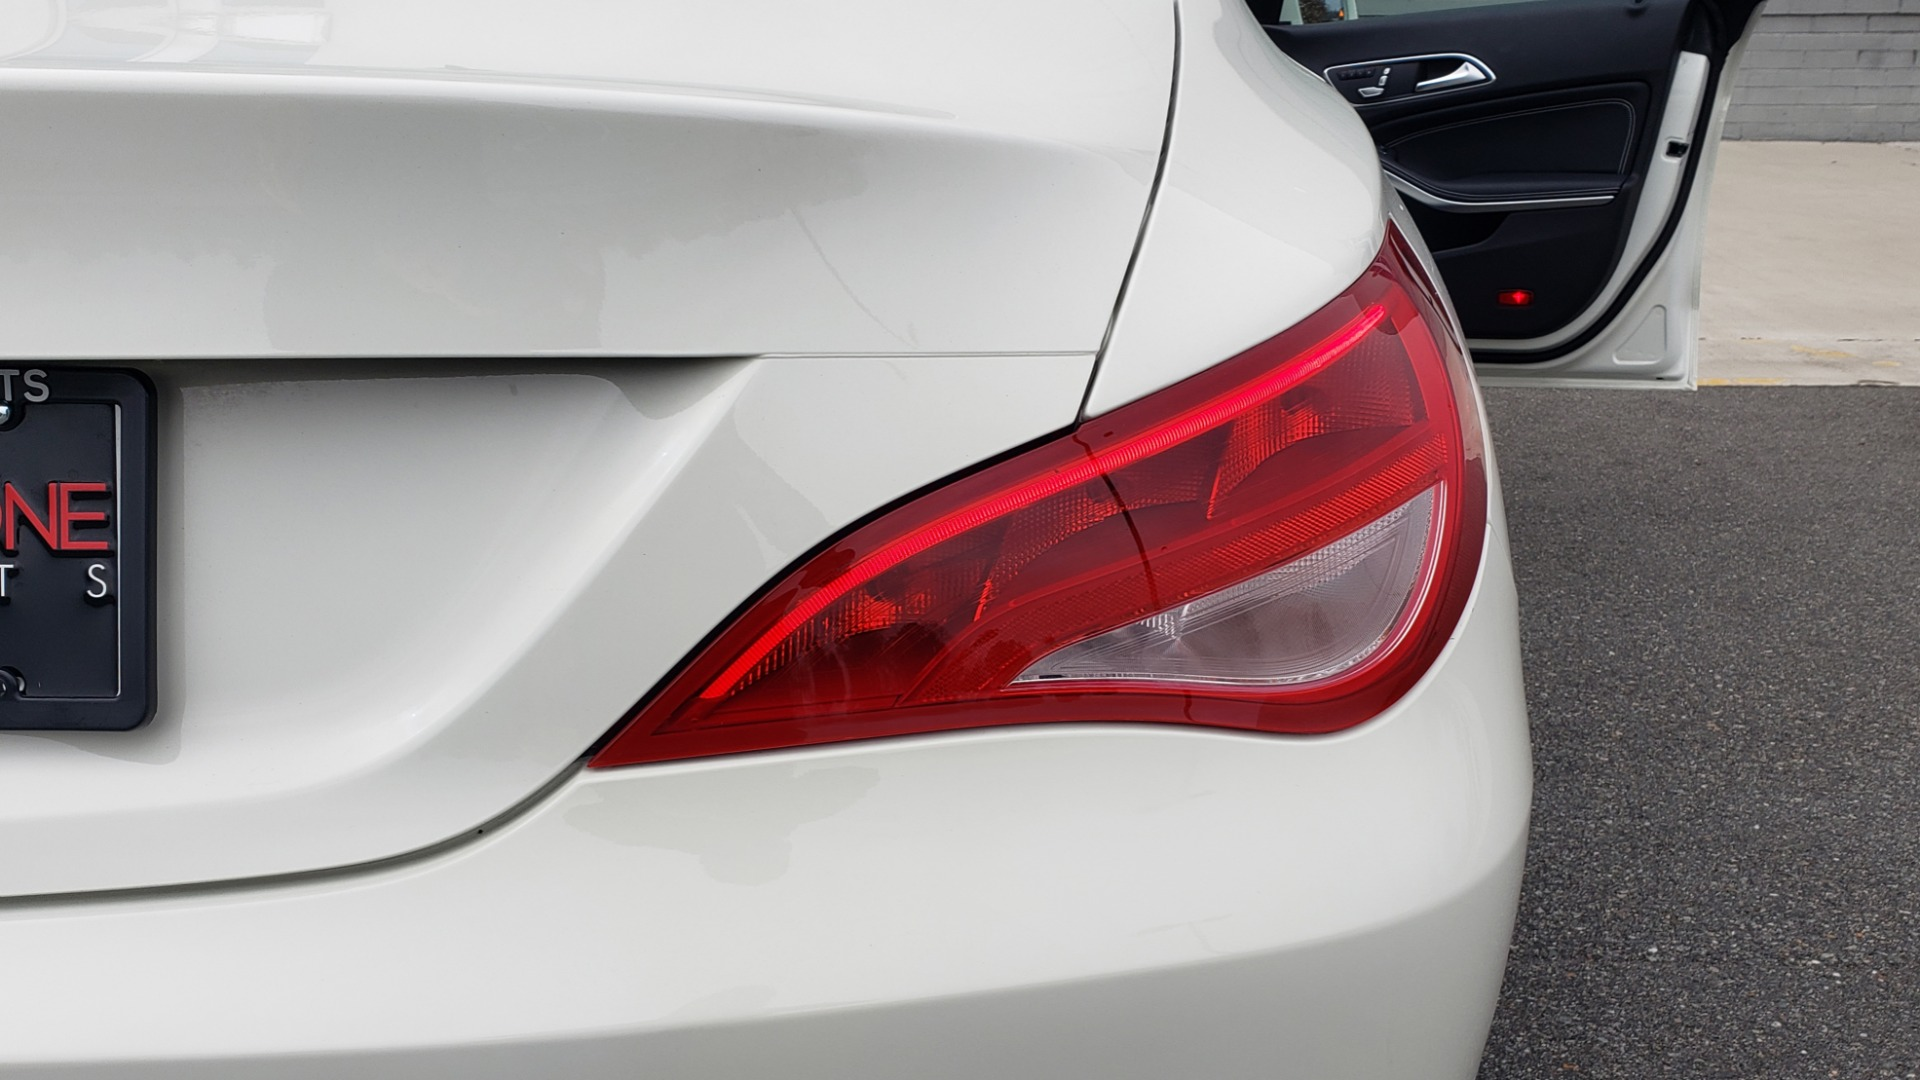 Used 2018 Mercedes-Benz CLA 250 PREMIUM / NAV / PANO-ROOF / APPLE CARPLAY / REARVIEW for sale $23,995 at Formula Imports in Charlotte NC 28227 28